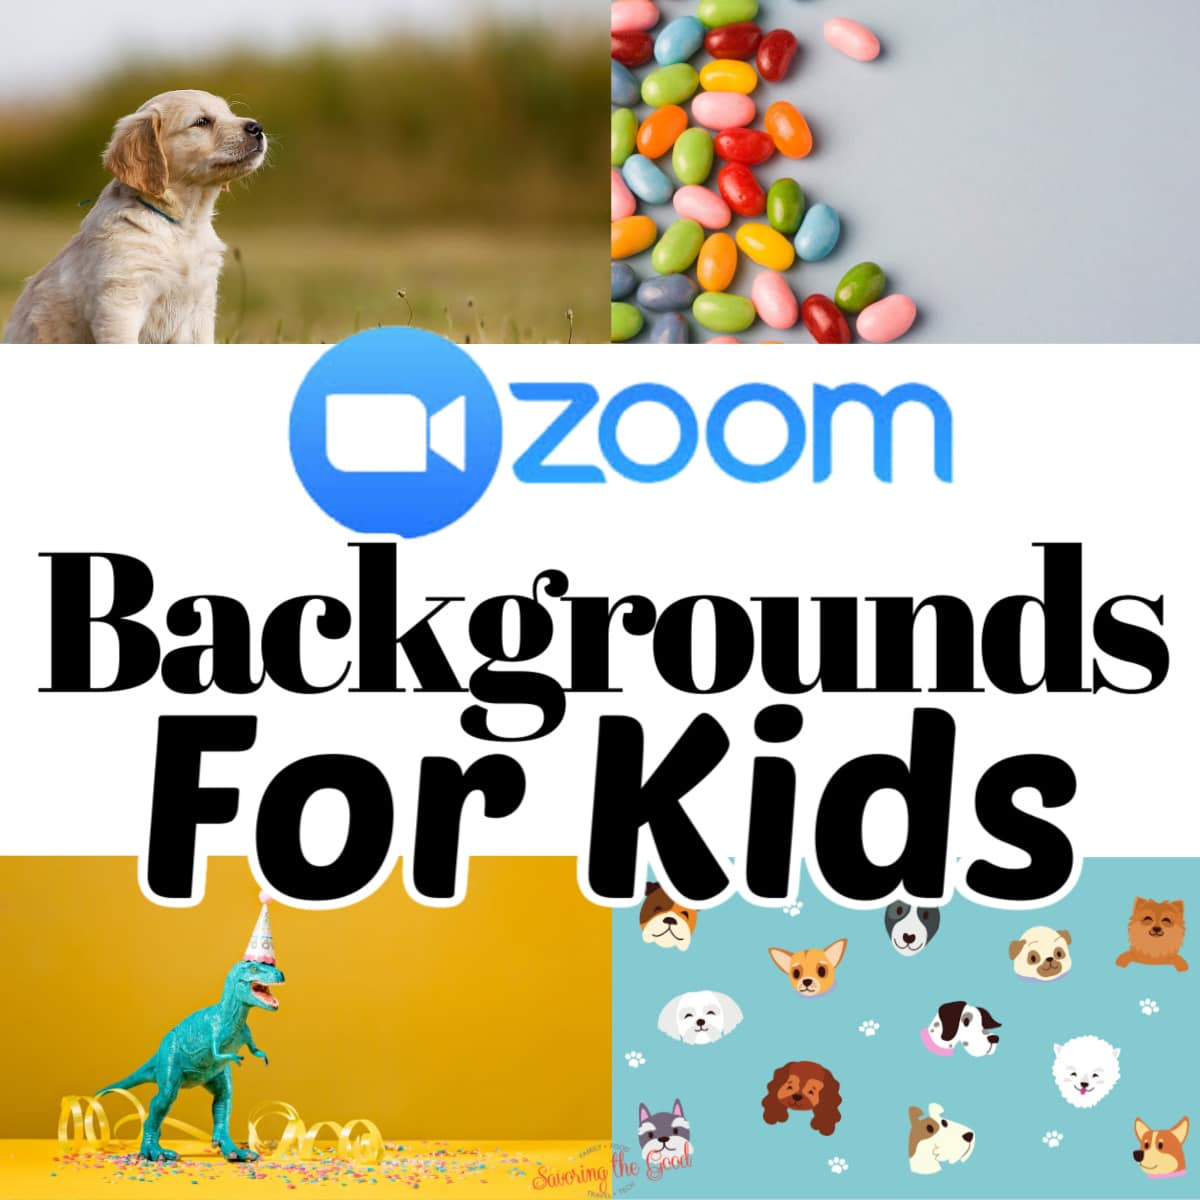 zoom backgrounds for kids graphic